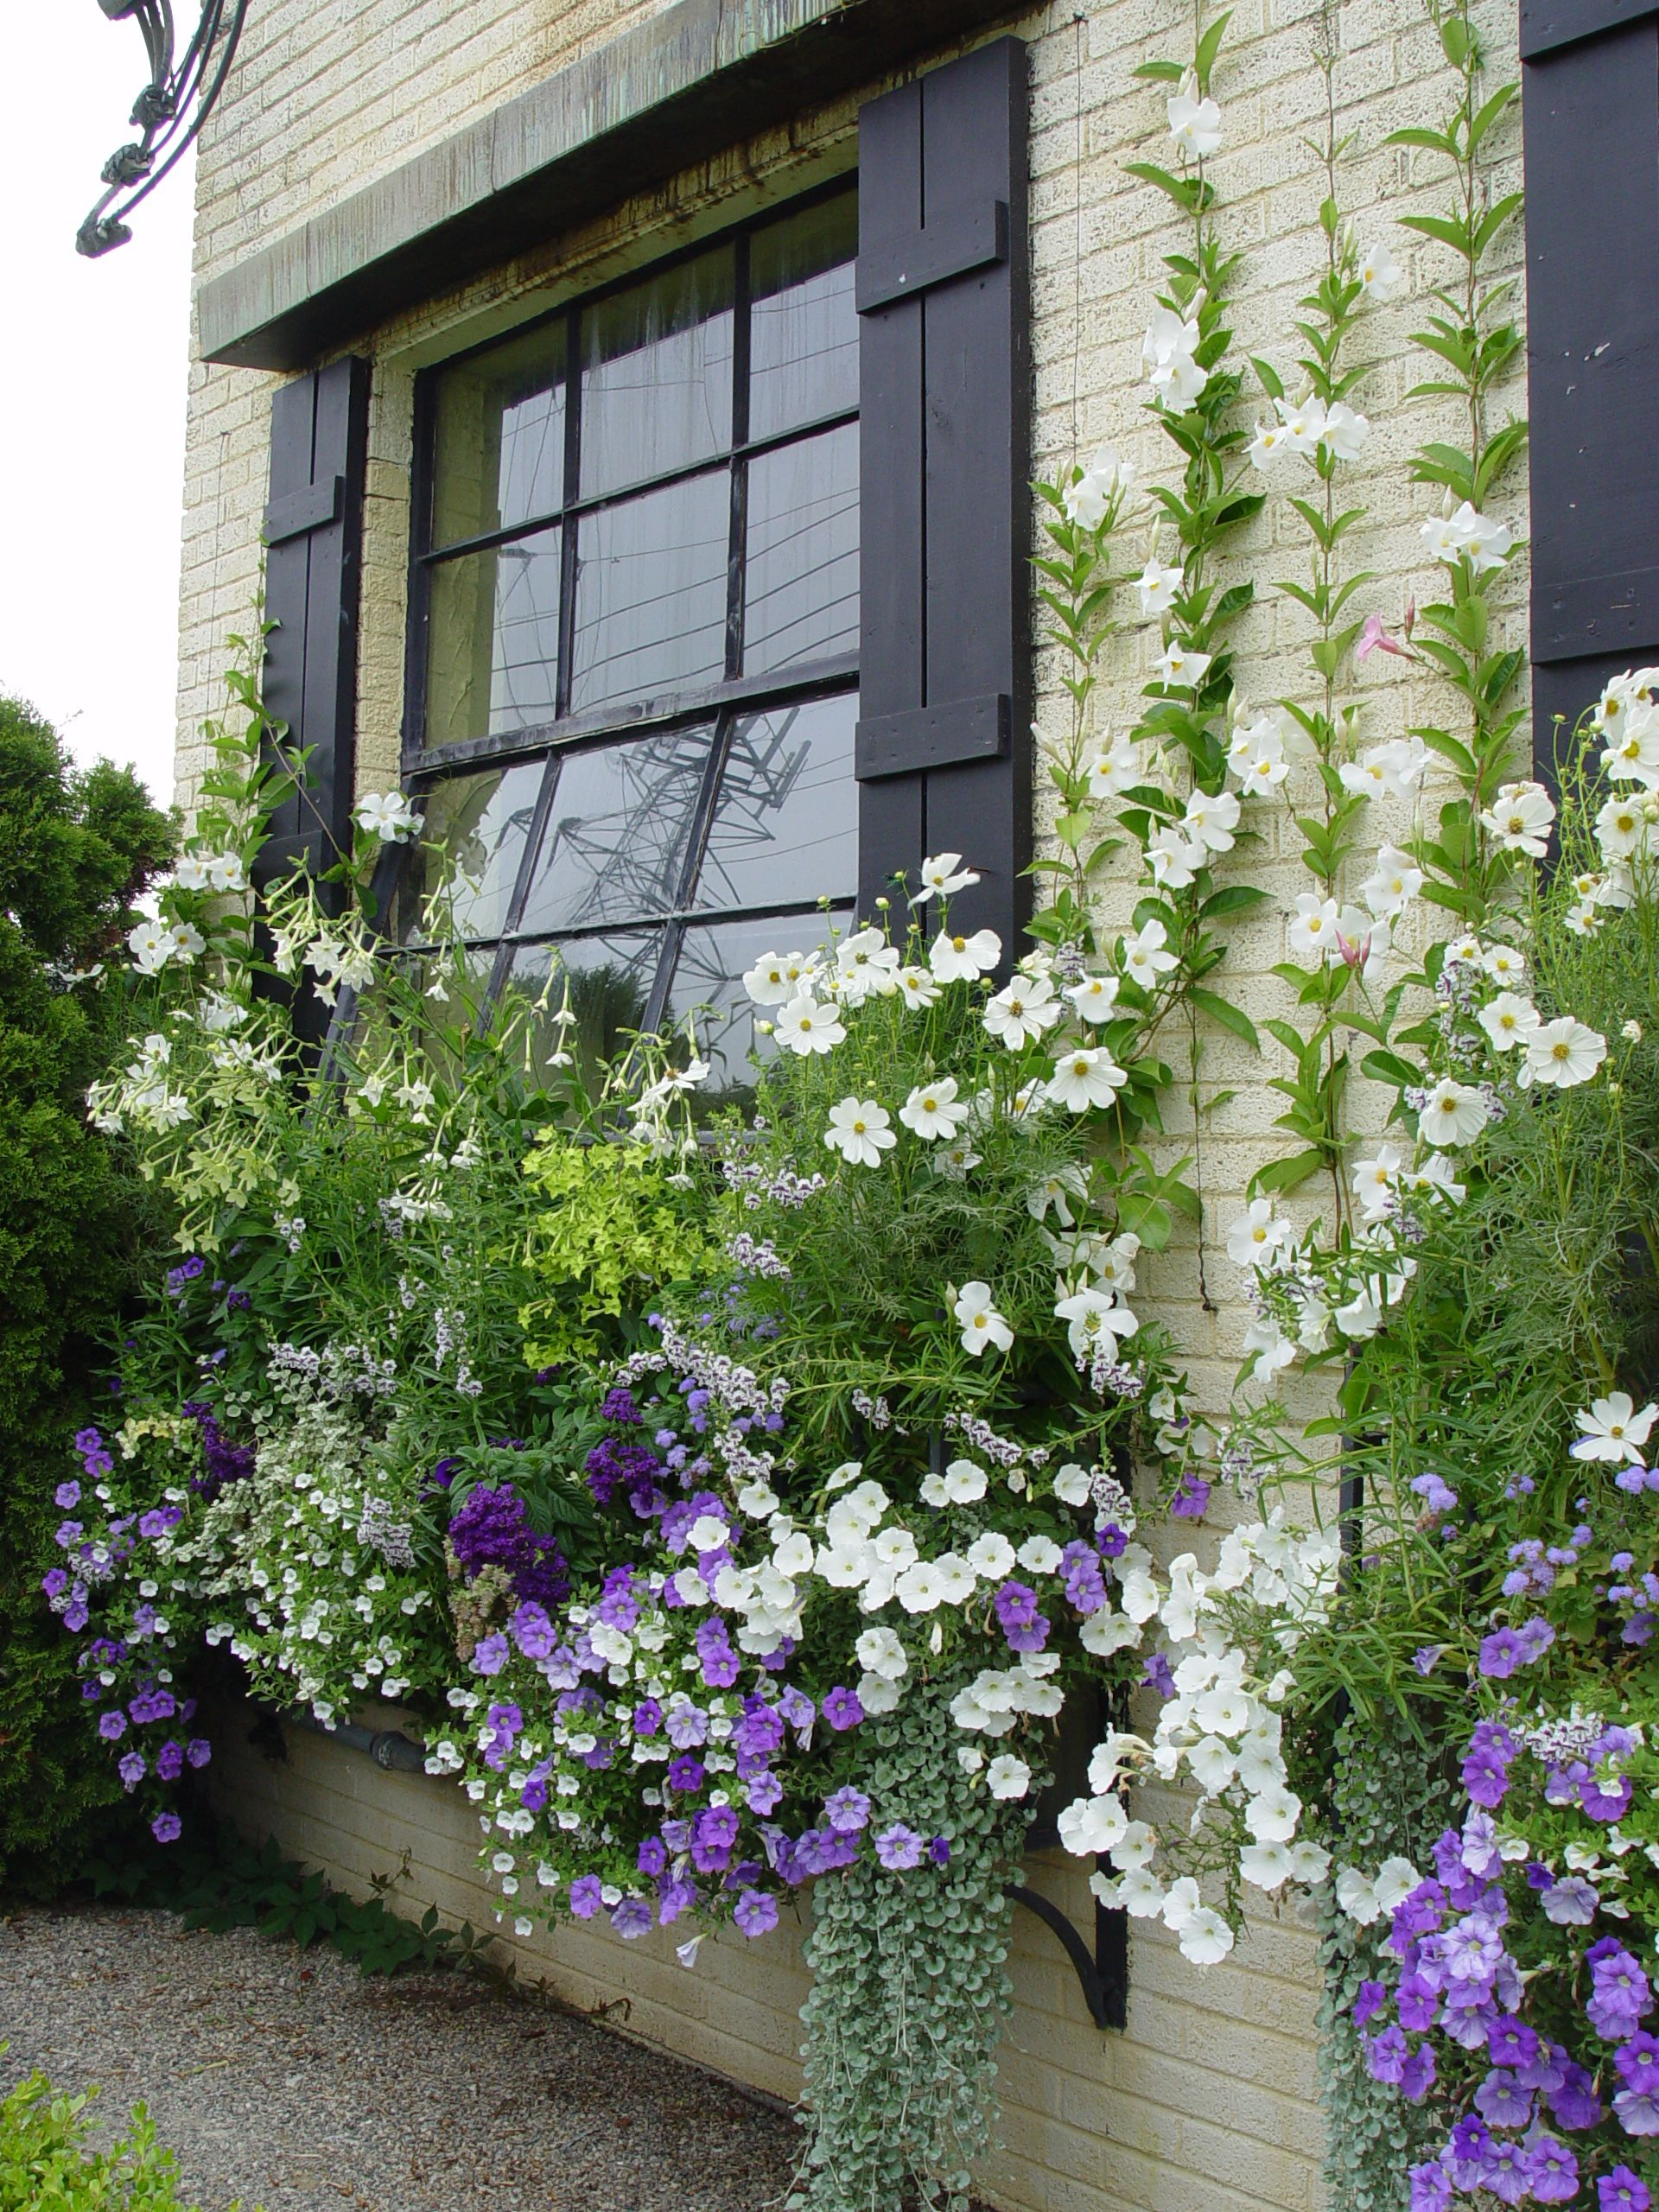 These window boxes and vines growing up the wall are so beautiful